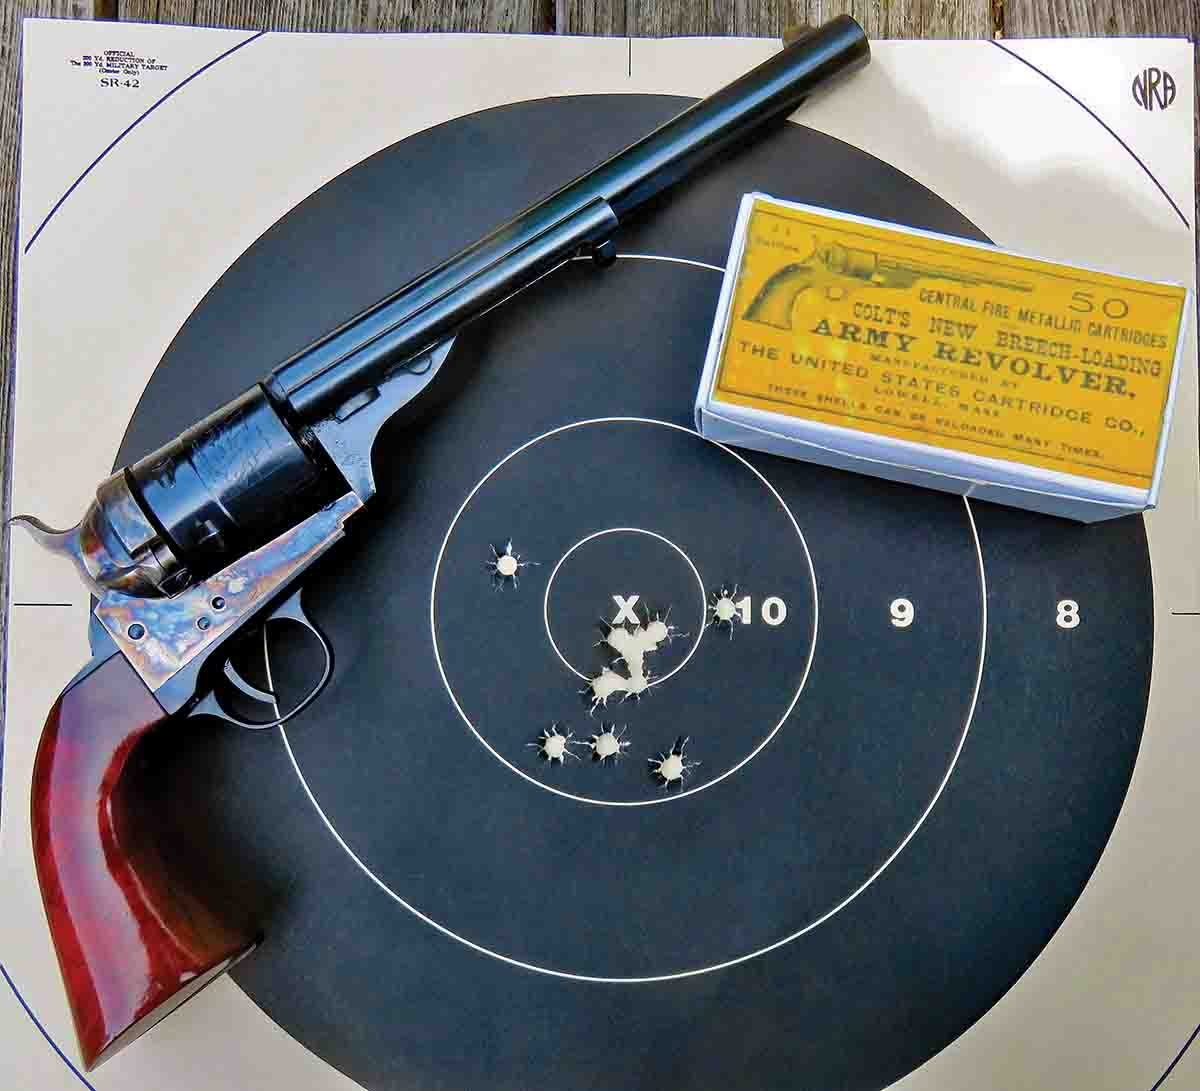 10 shots with Mike's .44 Colt by Cimarron Firearms shows a score of 100 with 5Xs